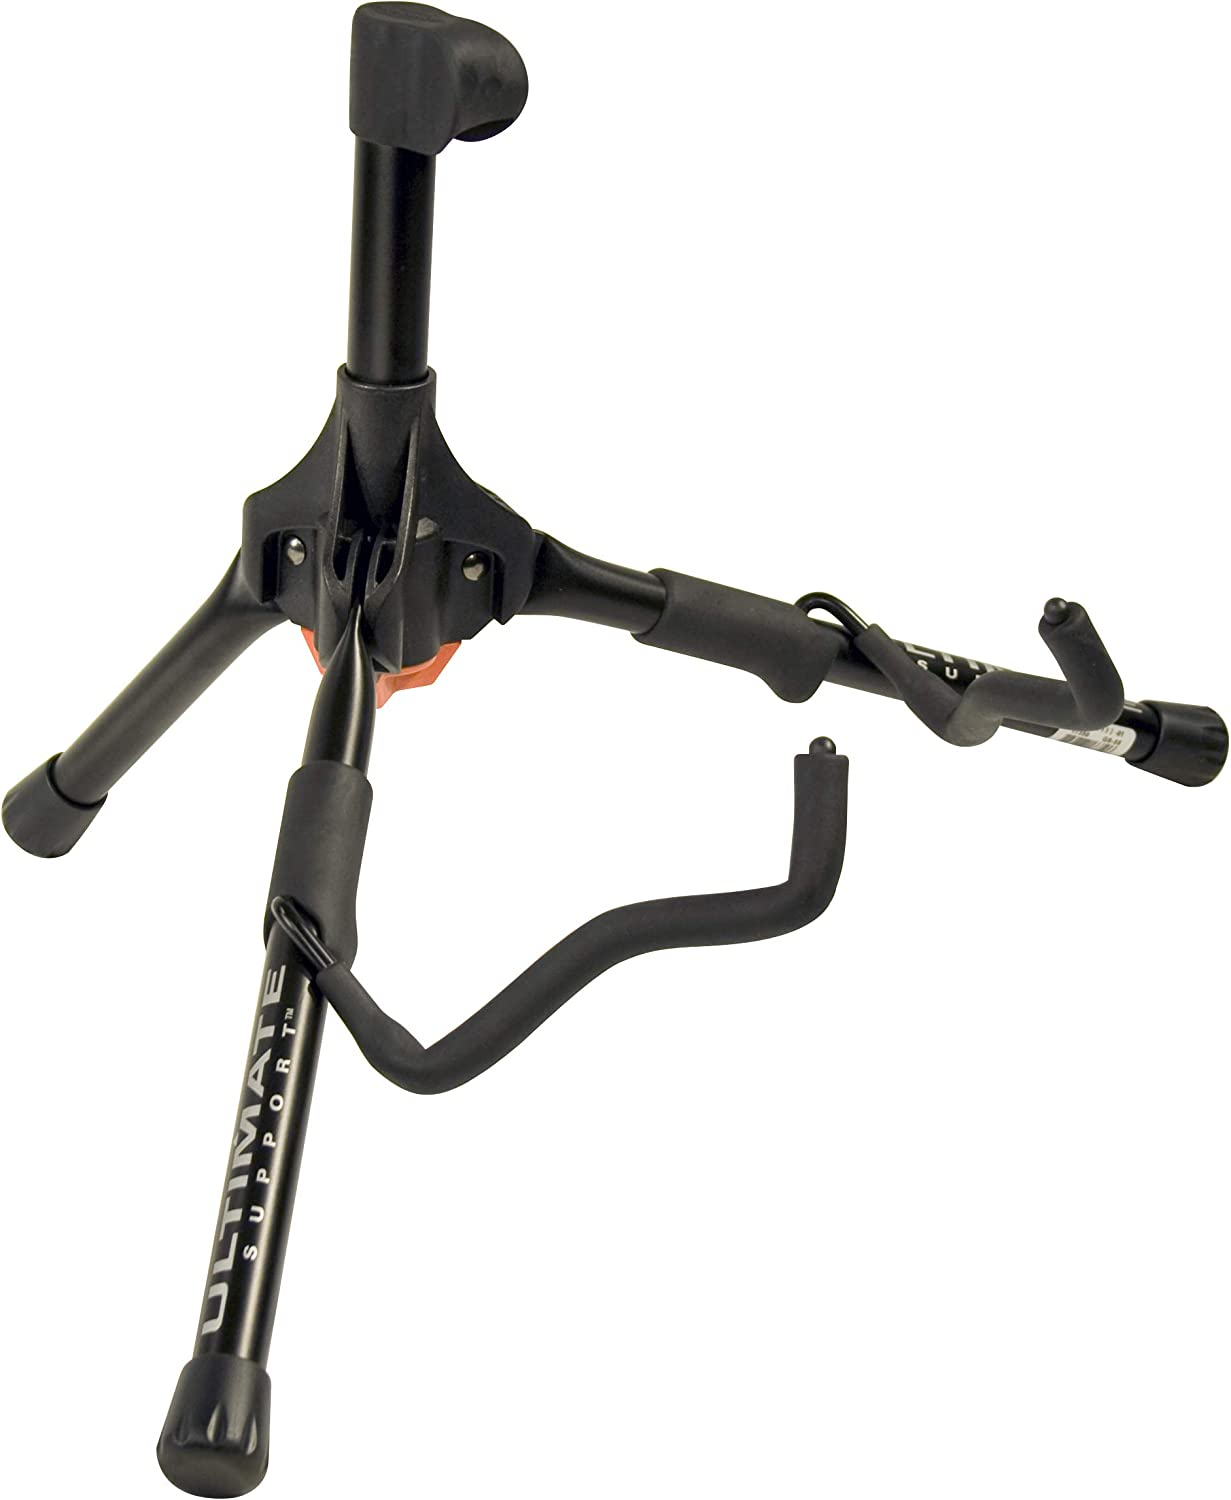 Ultimate Support GS-100 Genesis Series Guitar Stand with Locking Legs and Security Strap Yoke